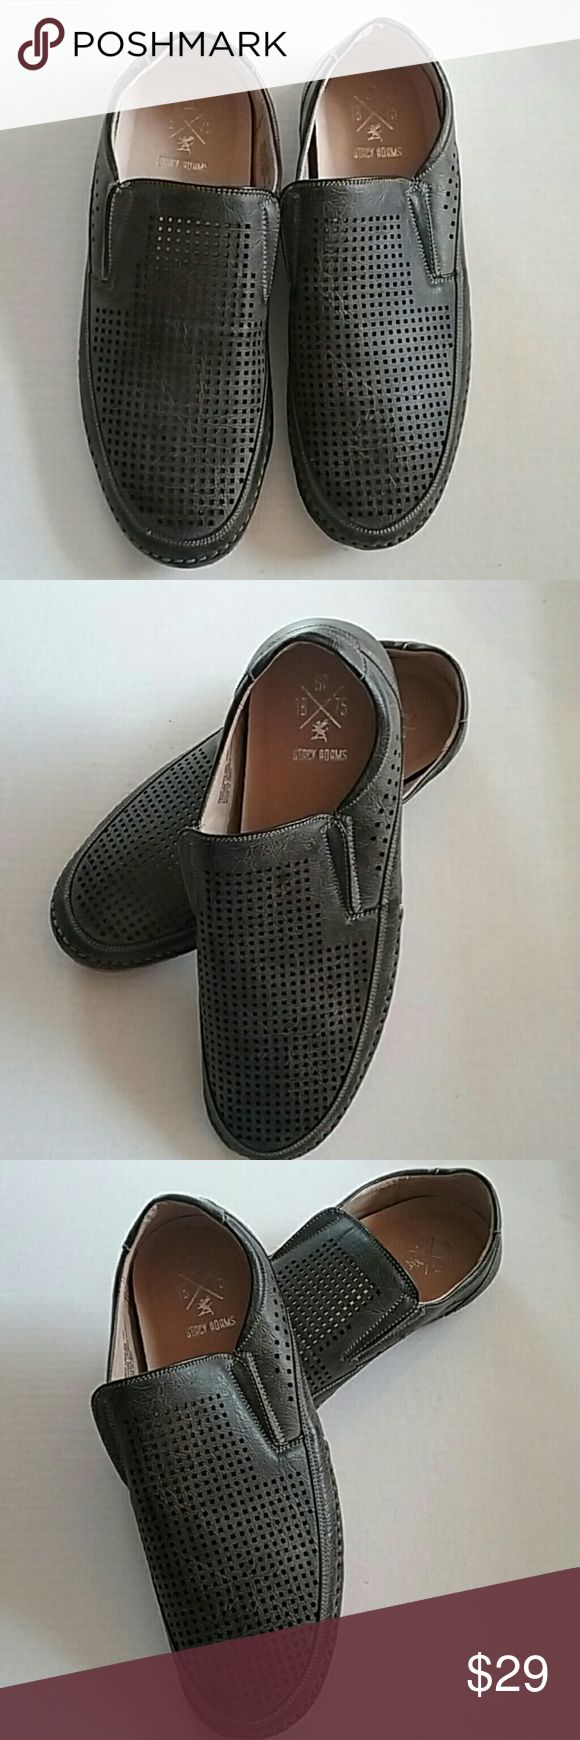 STACY ADAMS NORTHSHORE PEFORATED GRAY SLIP SHOES This is a lovely pair of Stacy Adams Northshore grey perforated slip-on shoes. Item number 24863 - 020. They are in like new condition. Please see the last picture there is a tiny bit of discoloration on one sole. They are men's size 11 M. They do not look like they have ever been worn. stacy adams Shoes Loafers & Slip-Ons